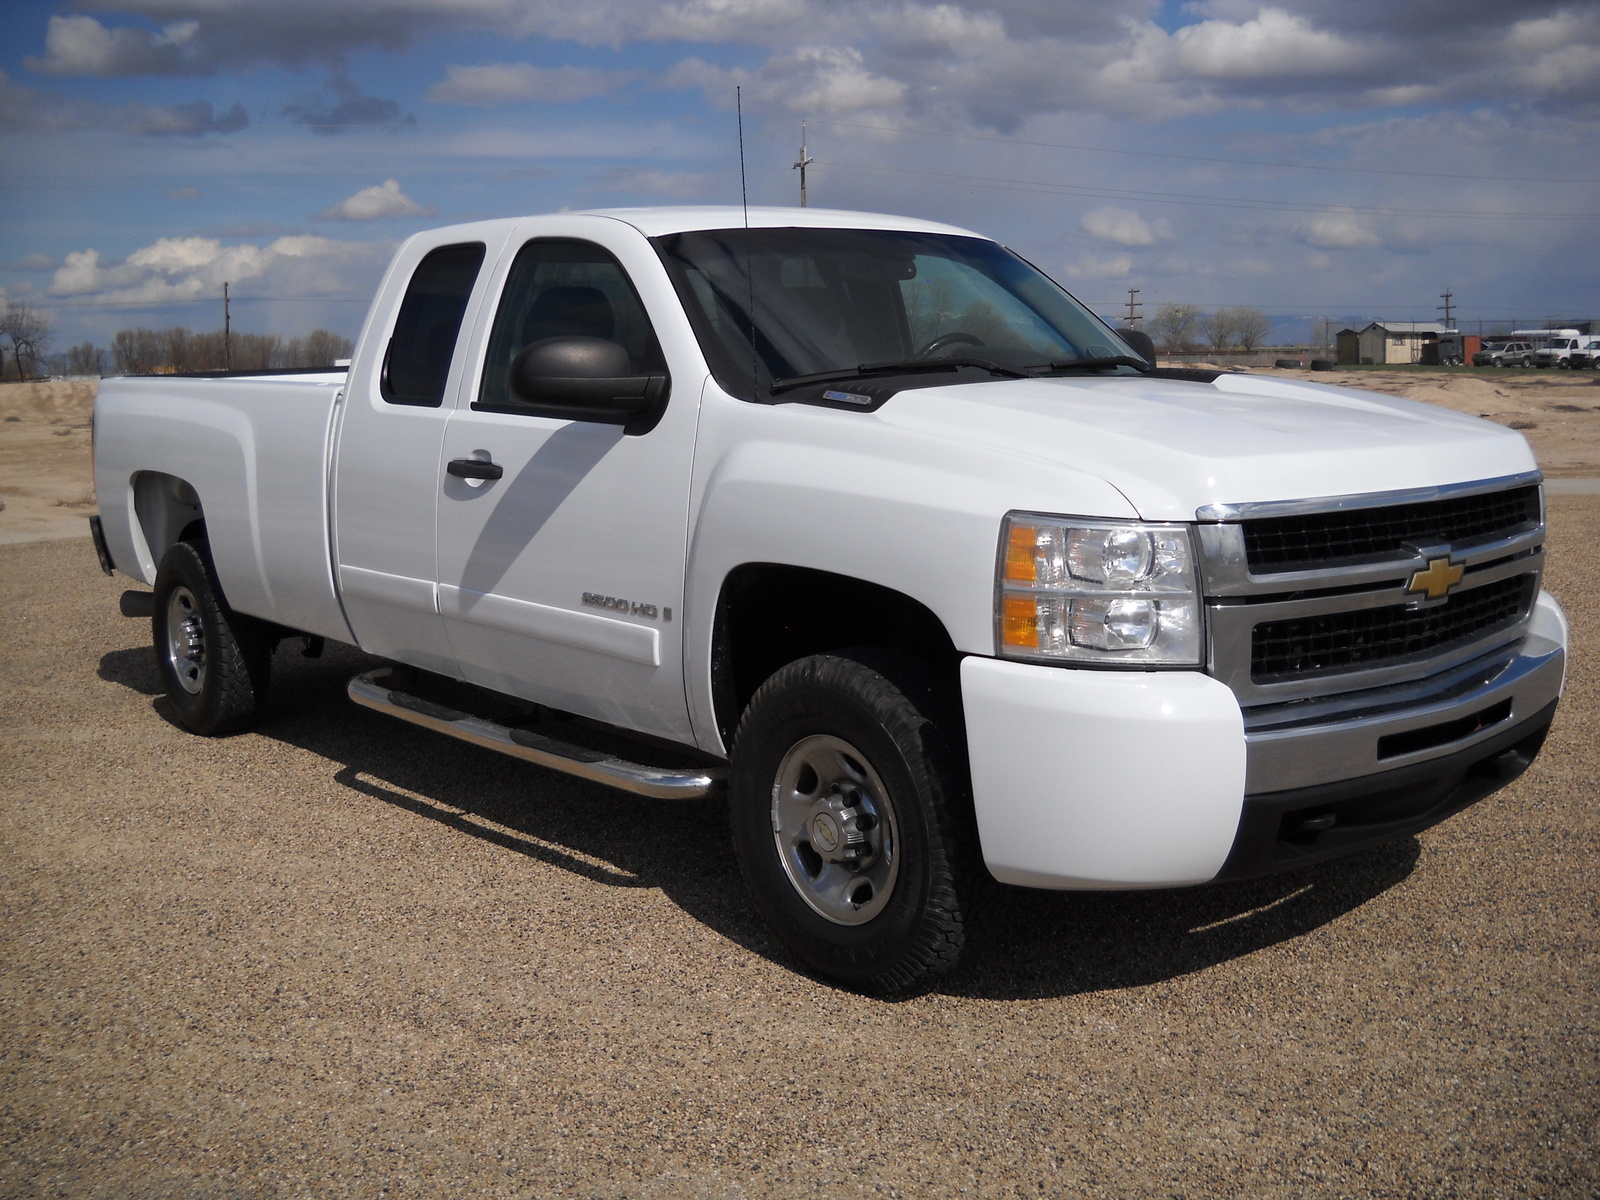 2008 Chevrolet Silverado 2500hd Consumer Reviews Autos